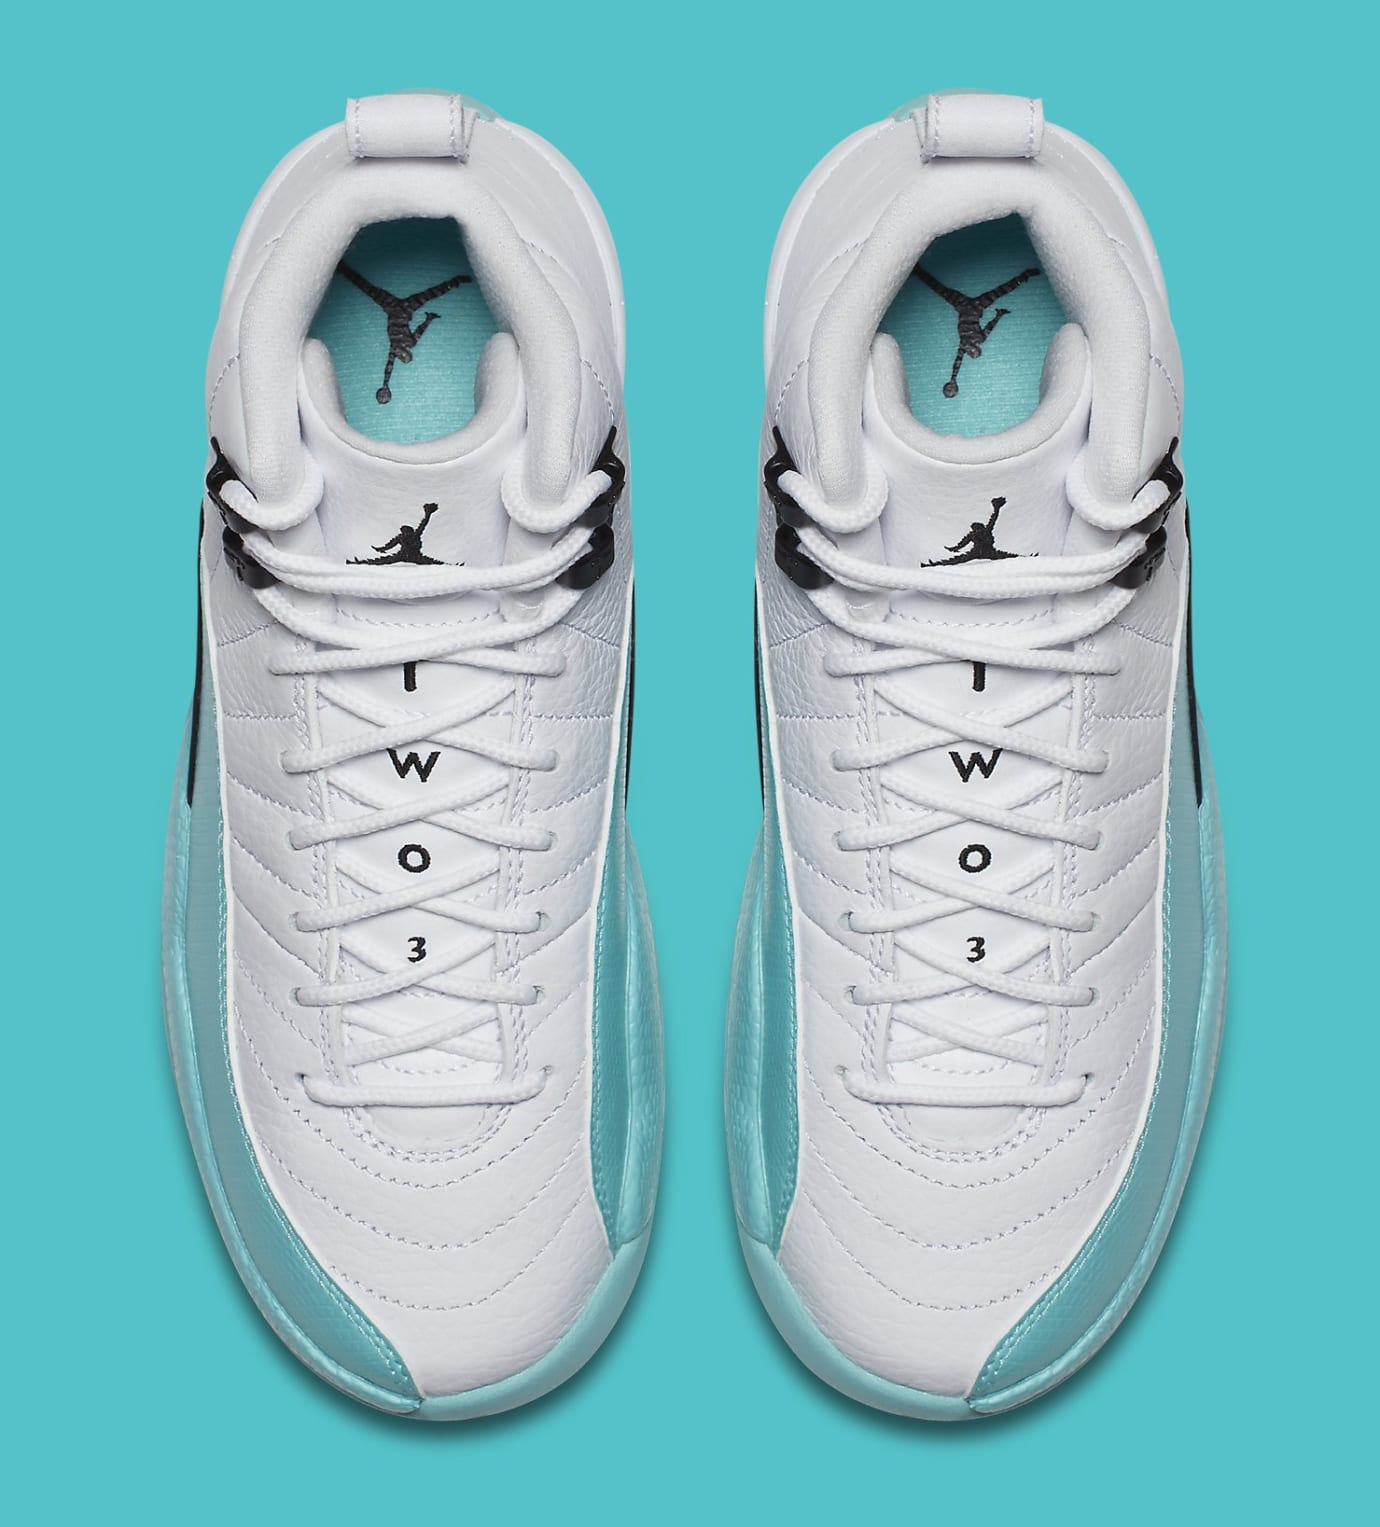 premium selection 65174 76e1f Air Jordan 12 Retro GG 'White/Light Aqua-Black' 510815-100 ...